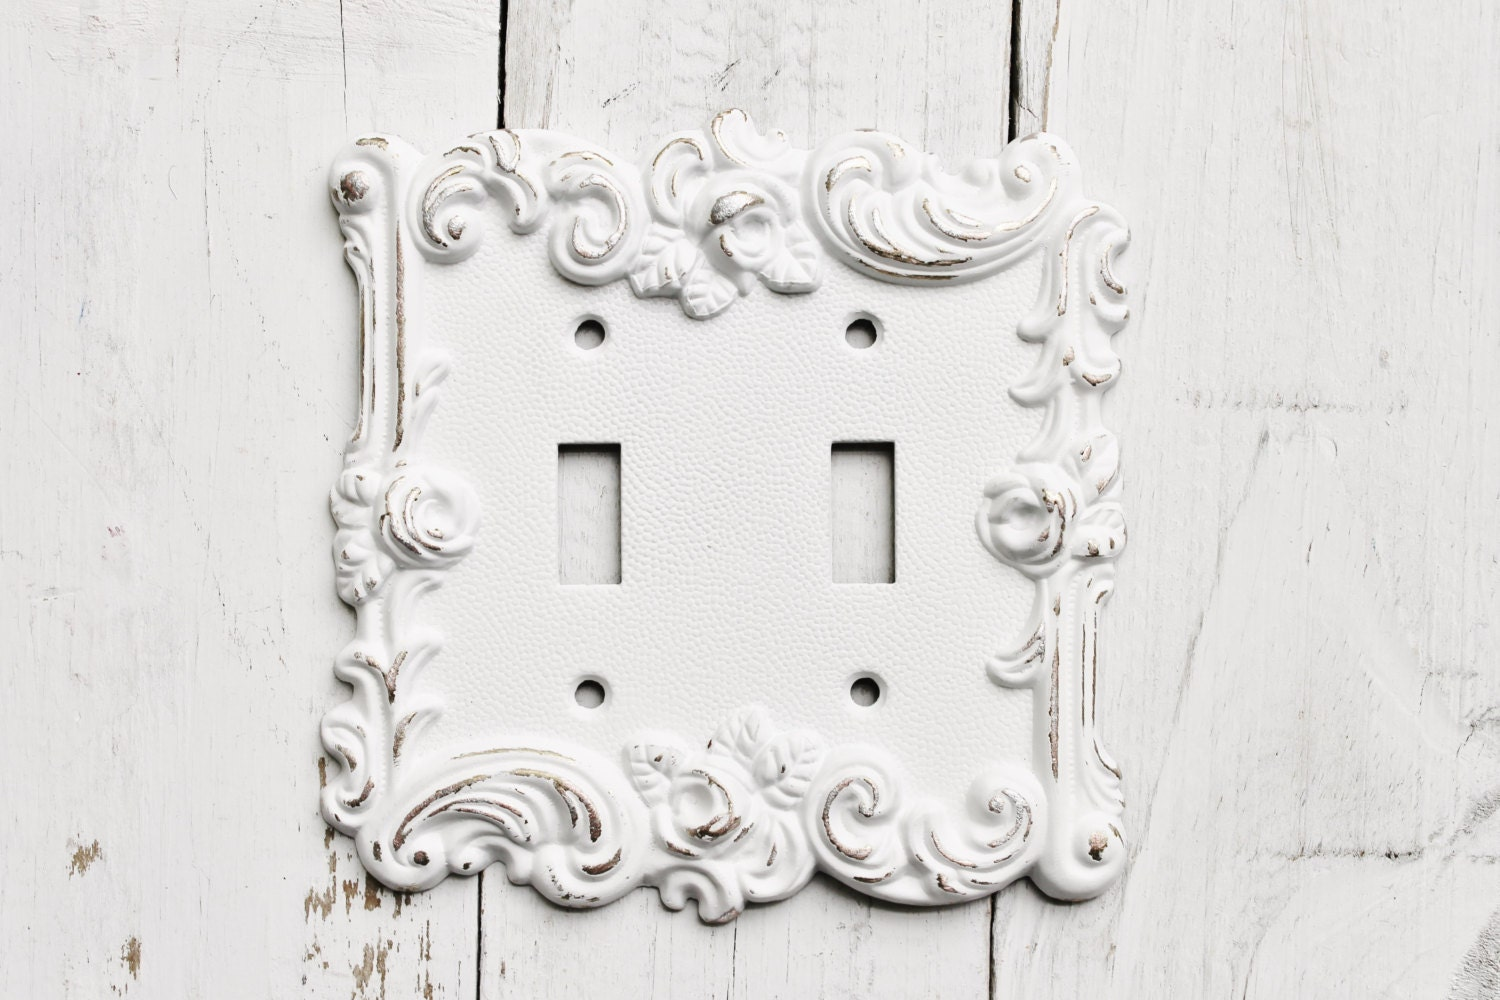 Distressed Metal Wall Decor : Distressed metal wall decor double light switch cover white